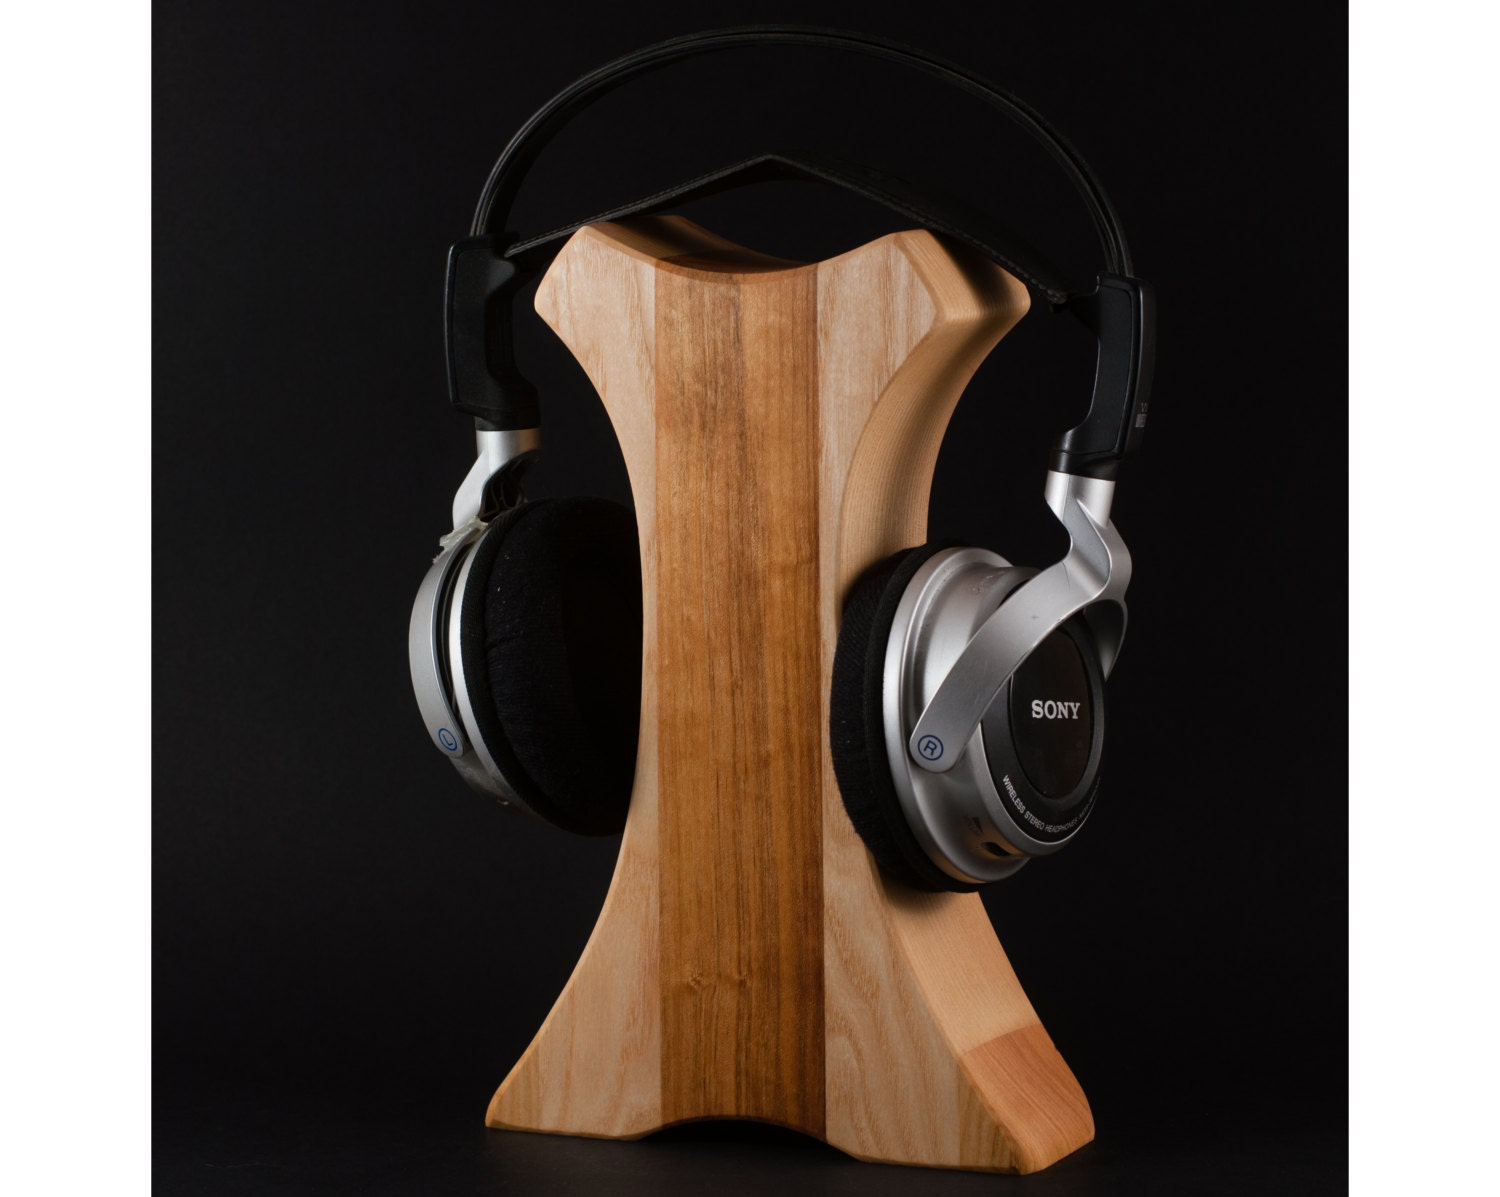 Wooden headphone stand by hollossywoodworks on etsy - Wooden headphone holder ...